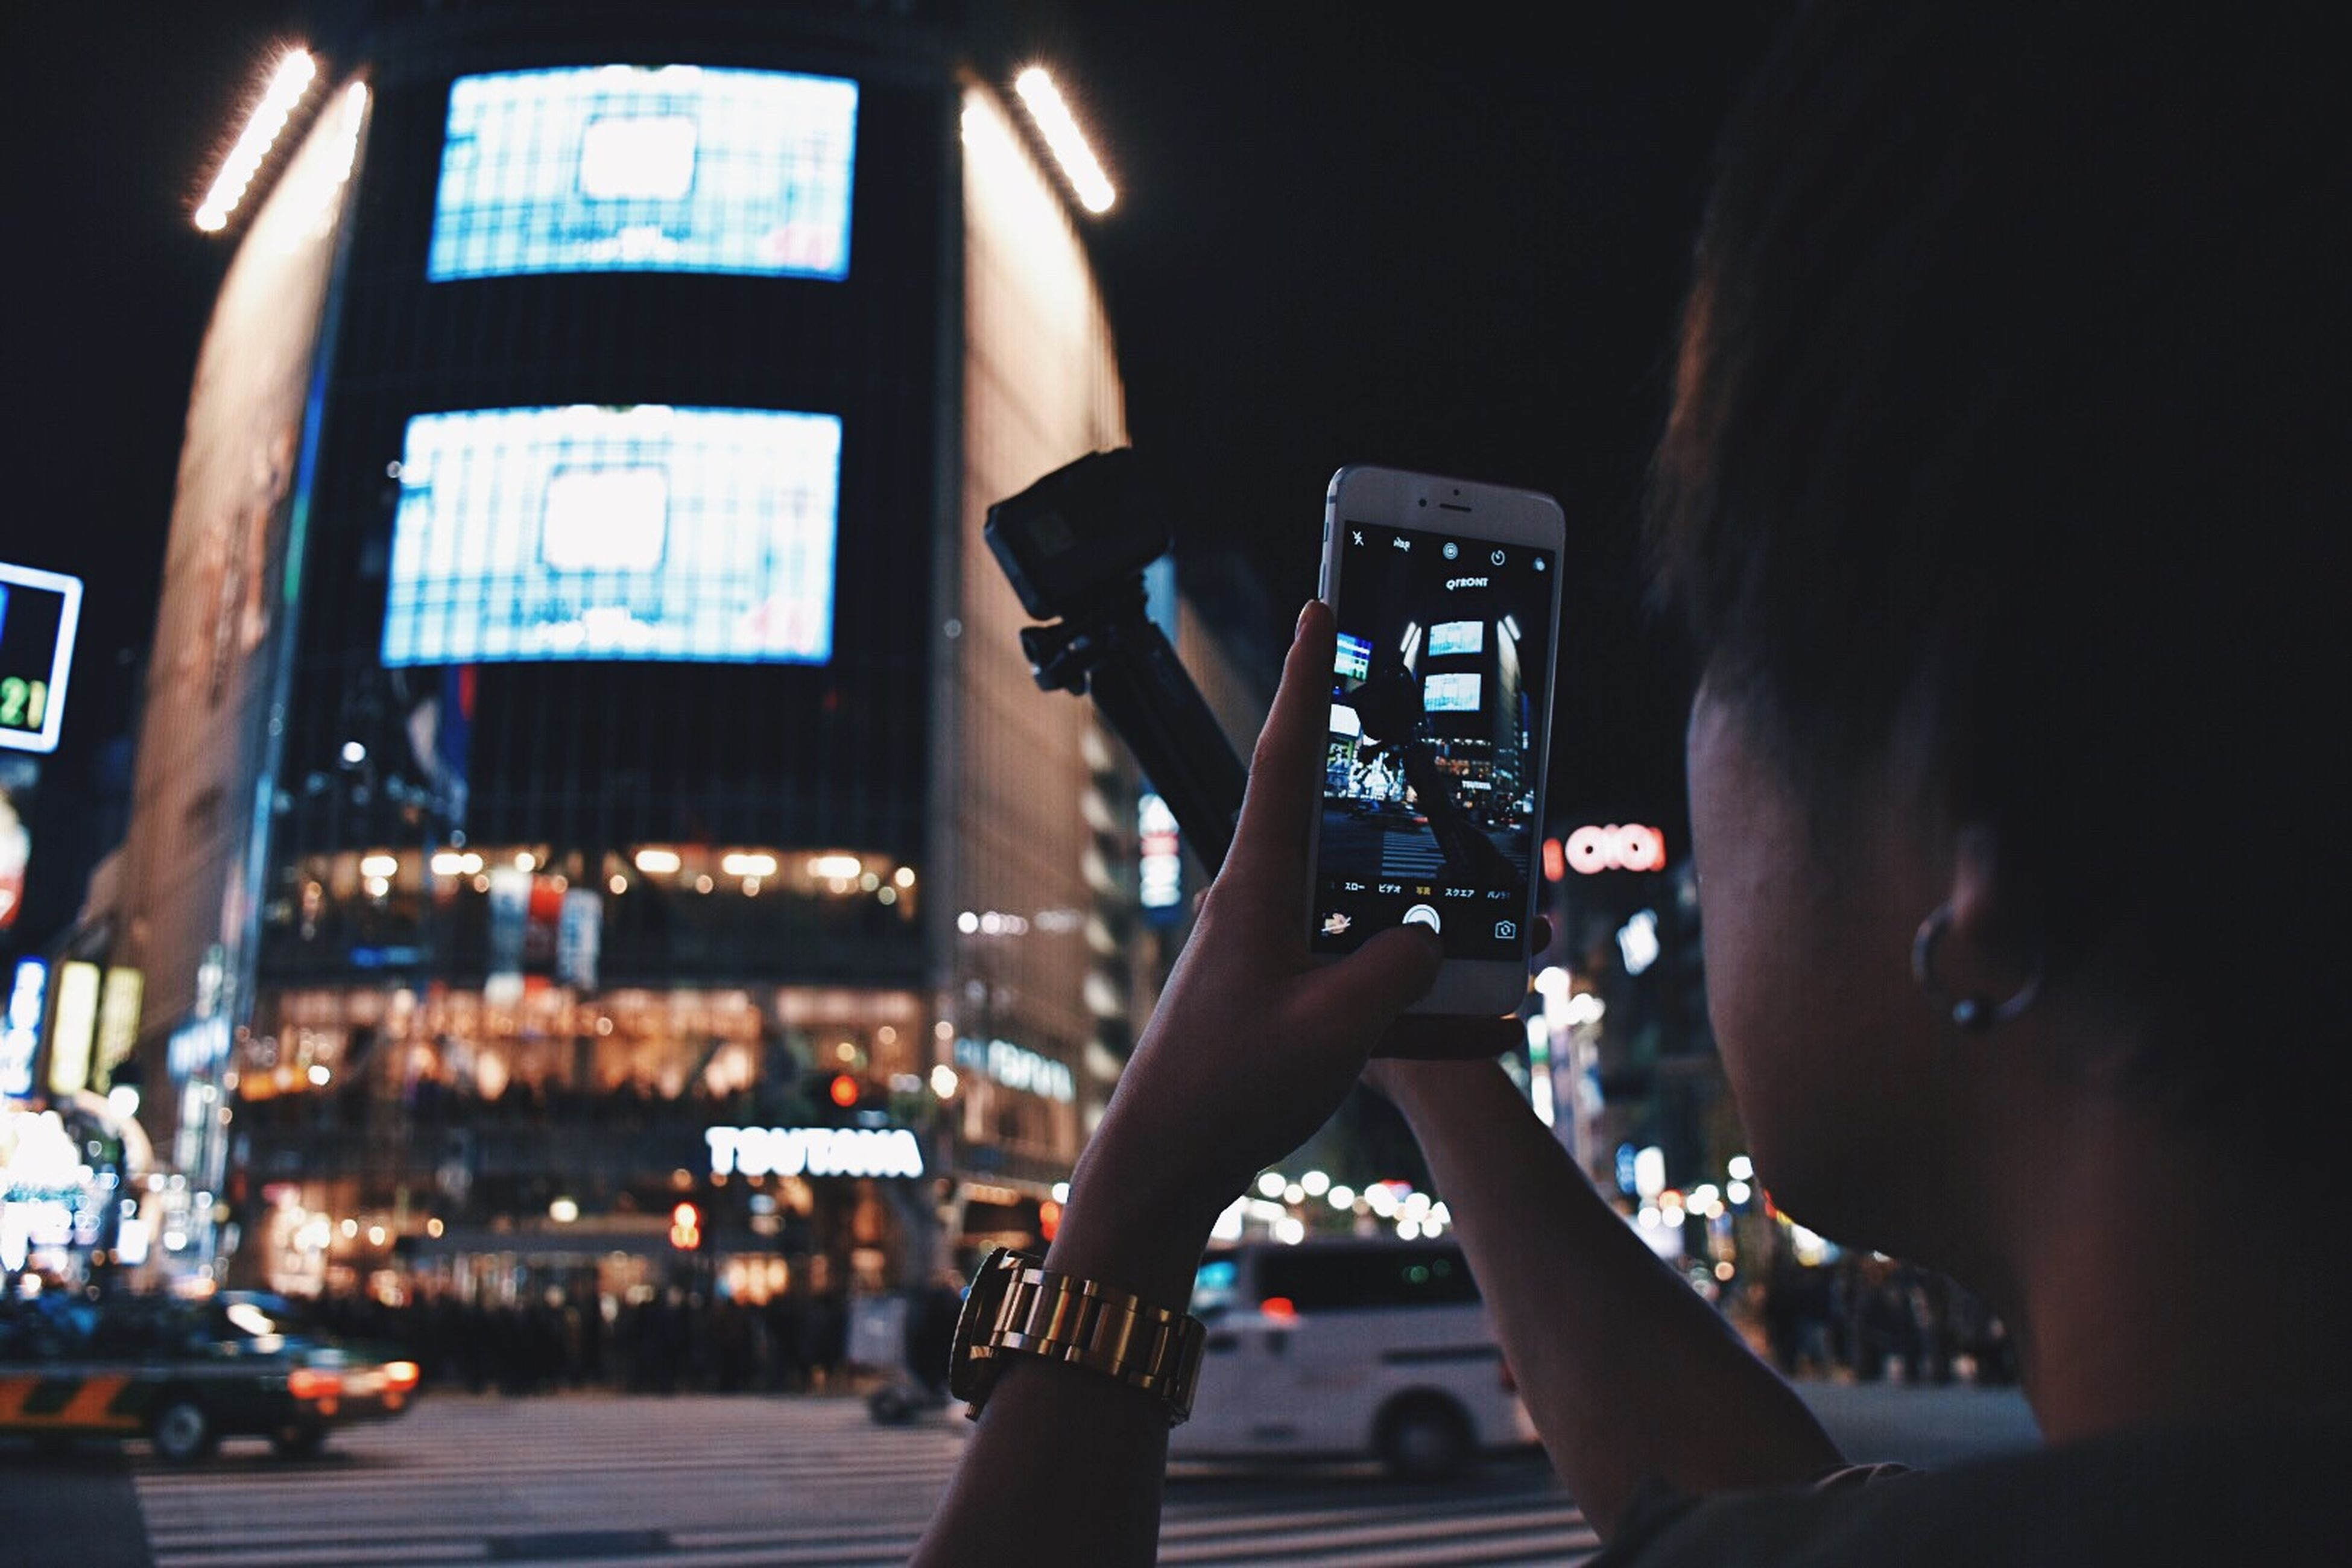 night, technology, illuminated, two people, rear view, photography themes, city, real people, adults only, people, outdoors, adult, filming